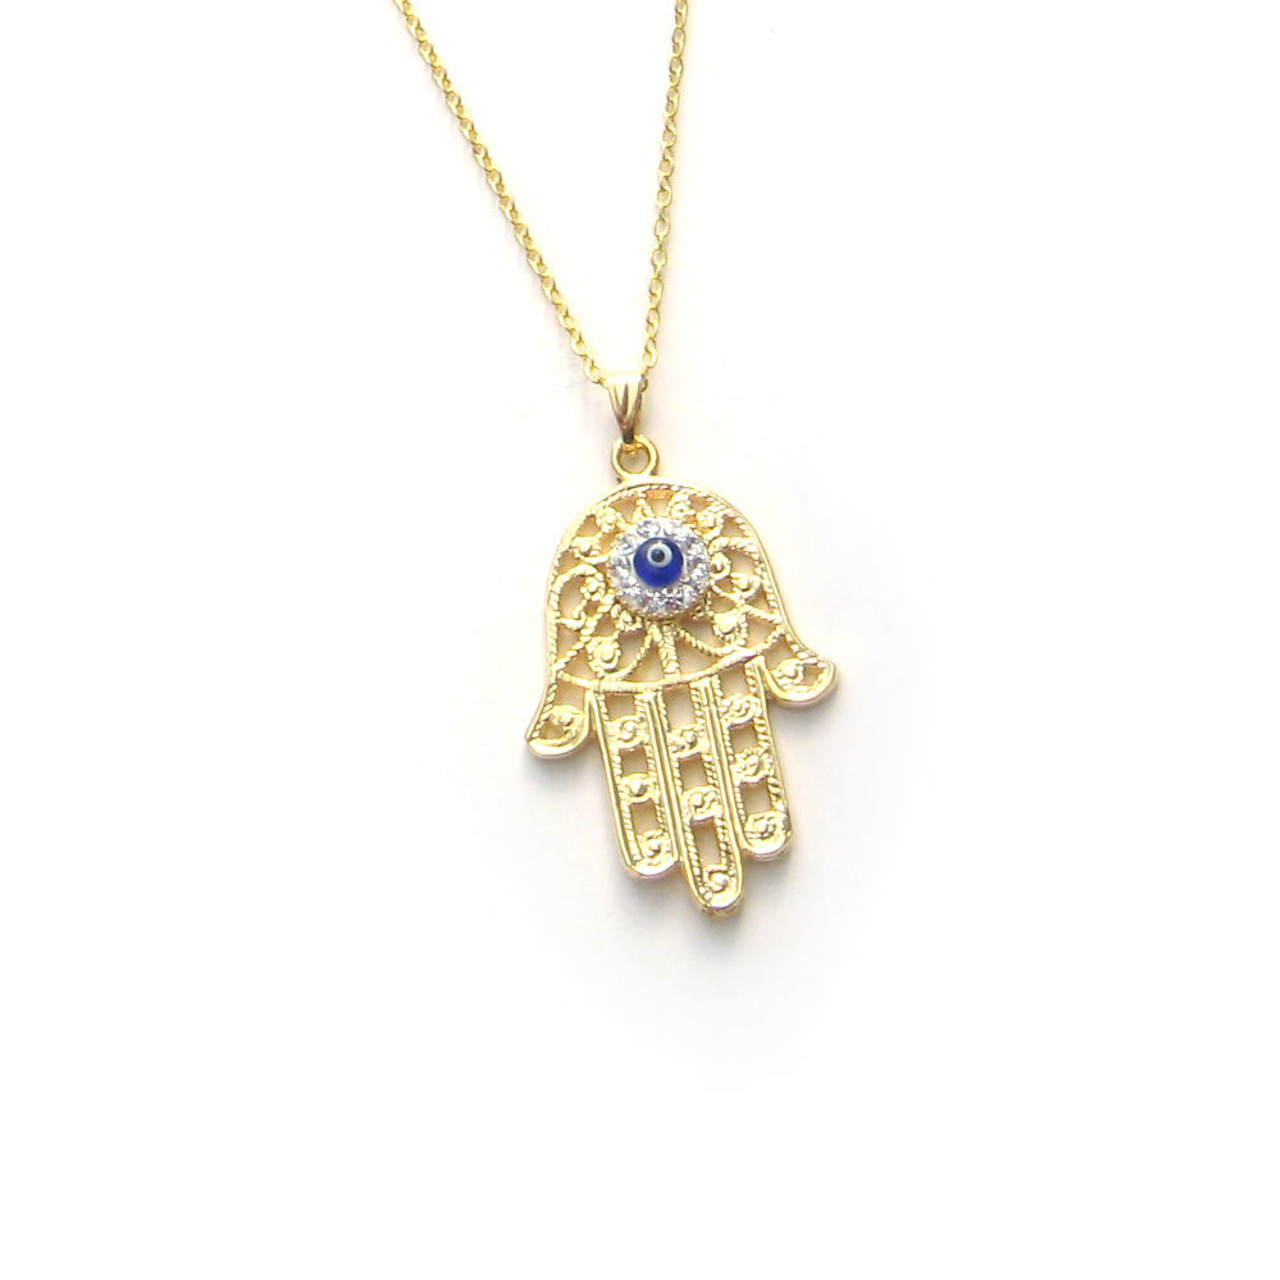 Hammered Gold Plated Evil Eye Pendant Necklace